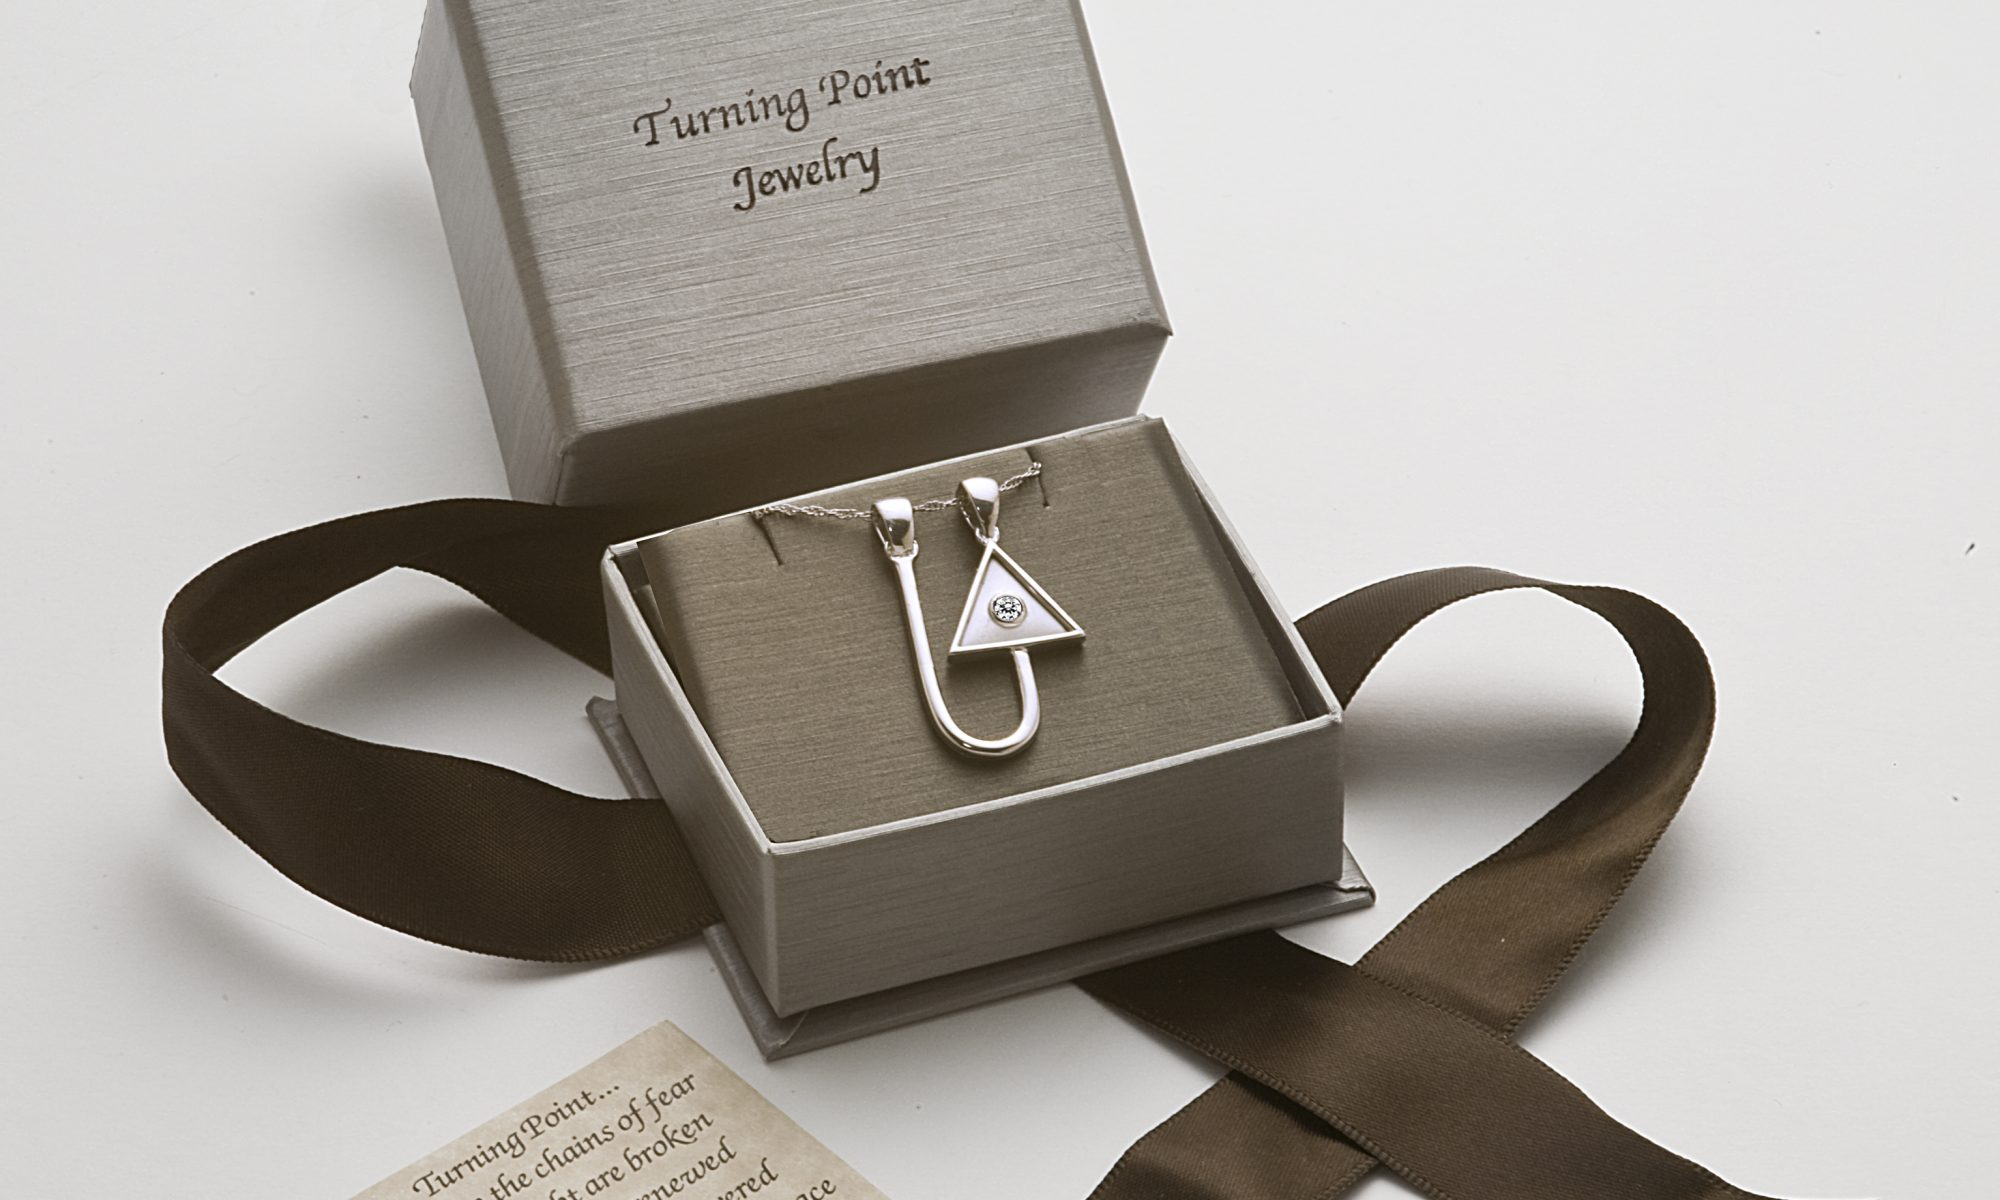 Turning Point Jewelry